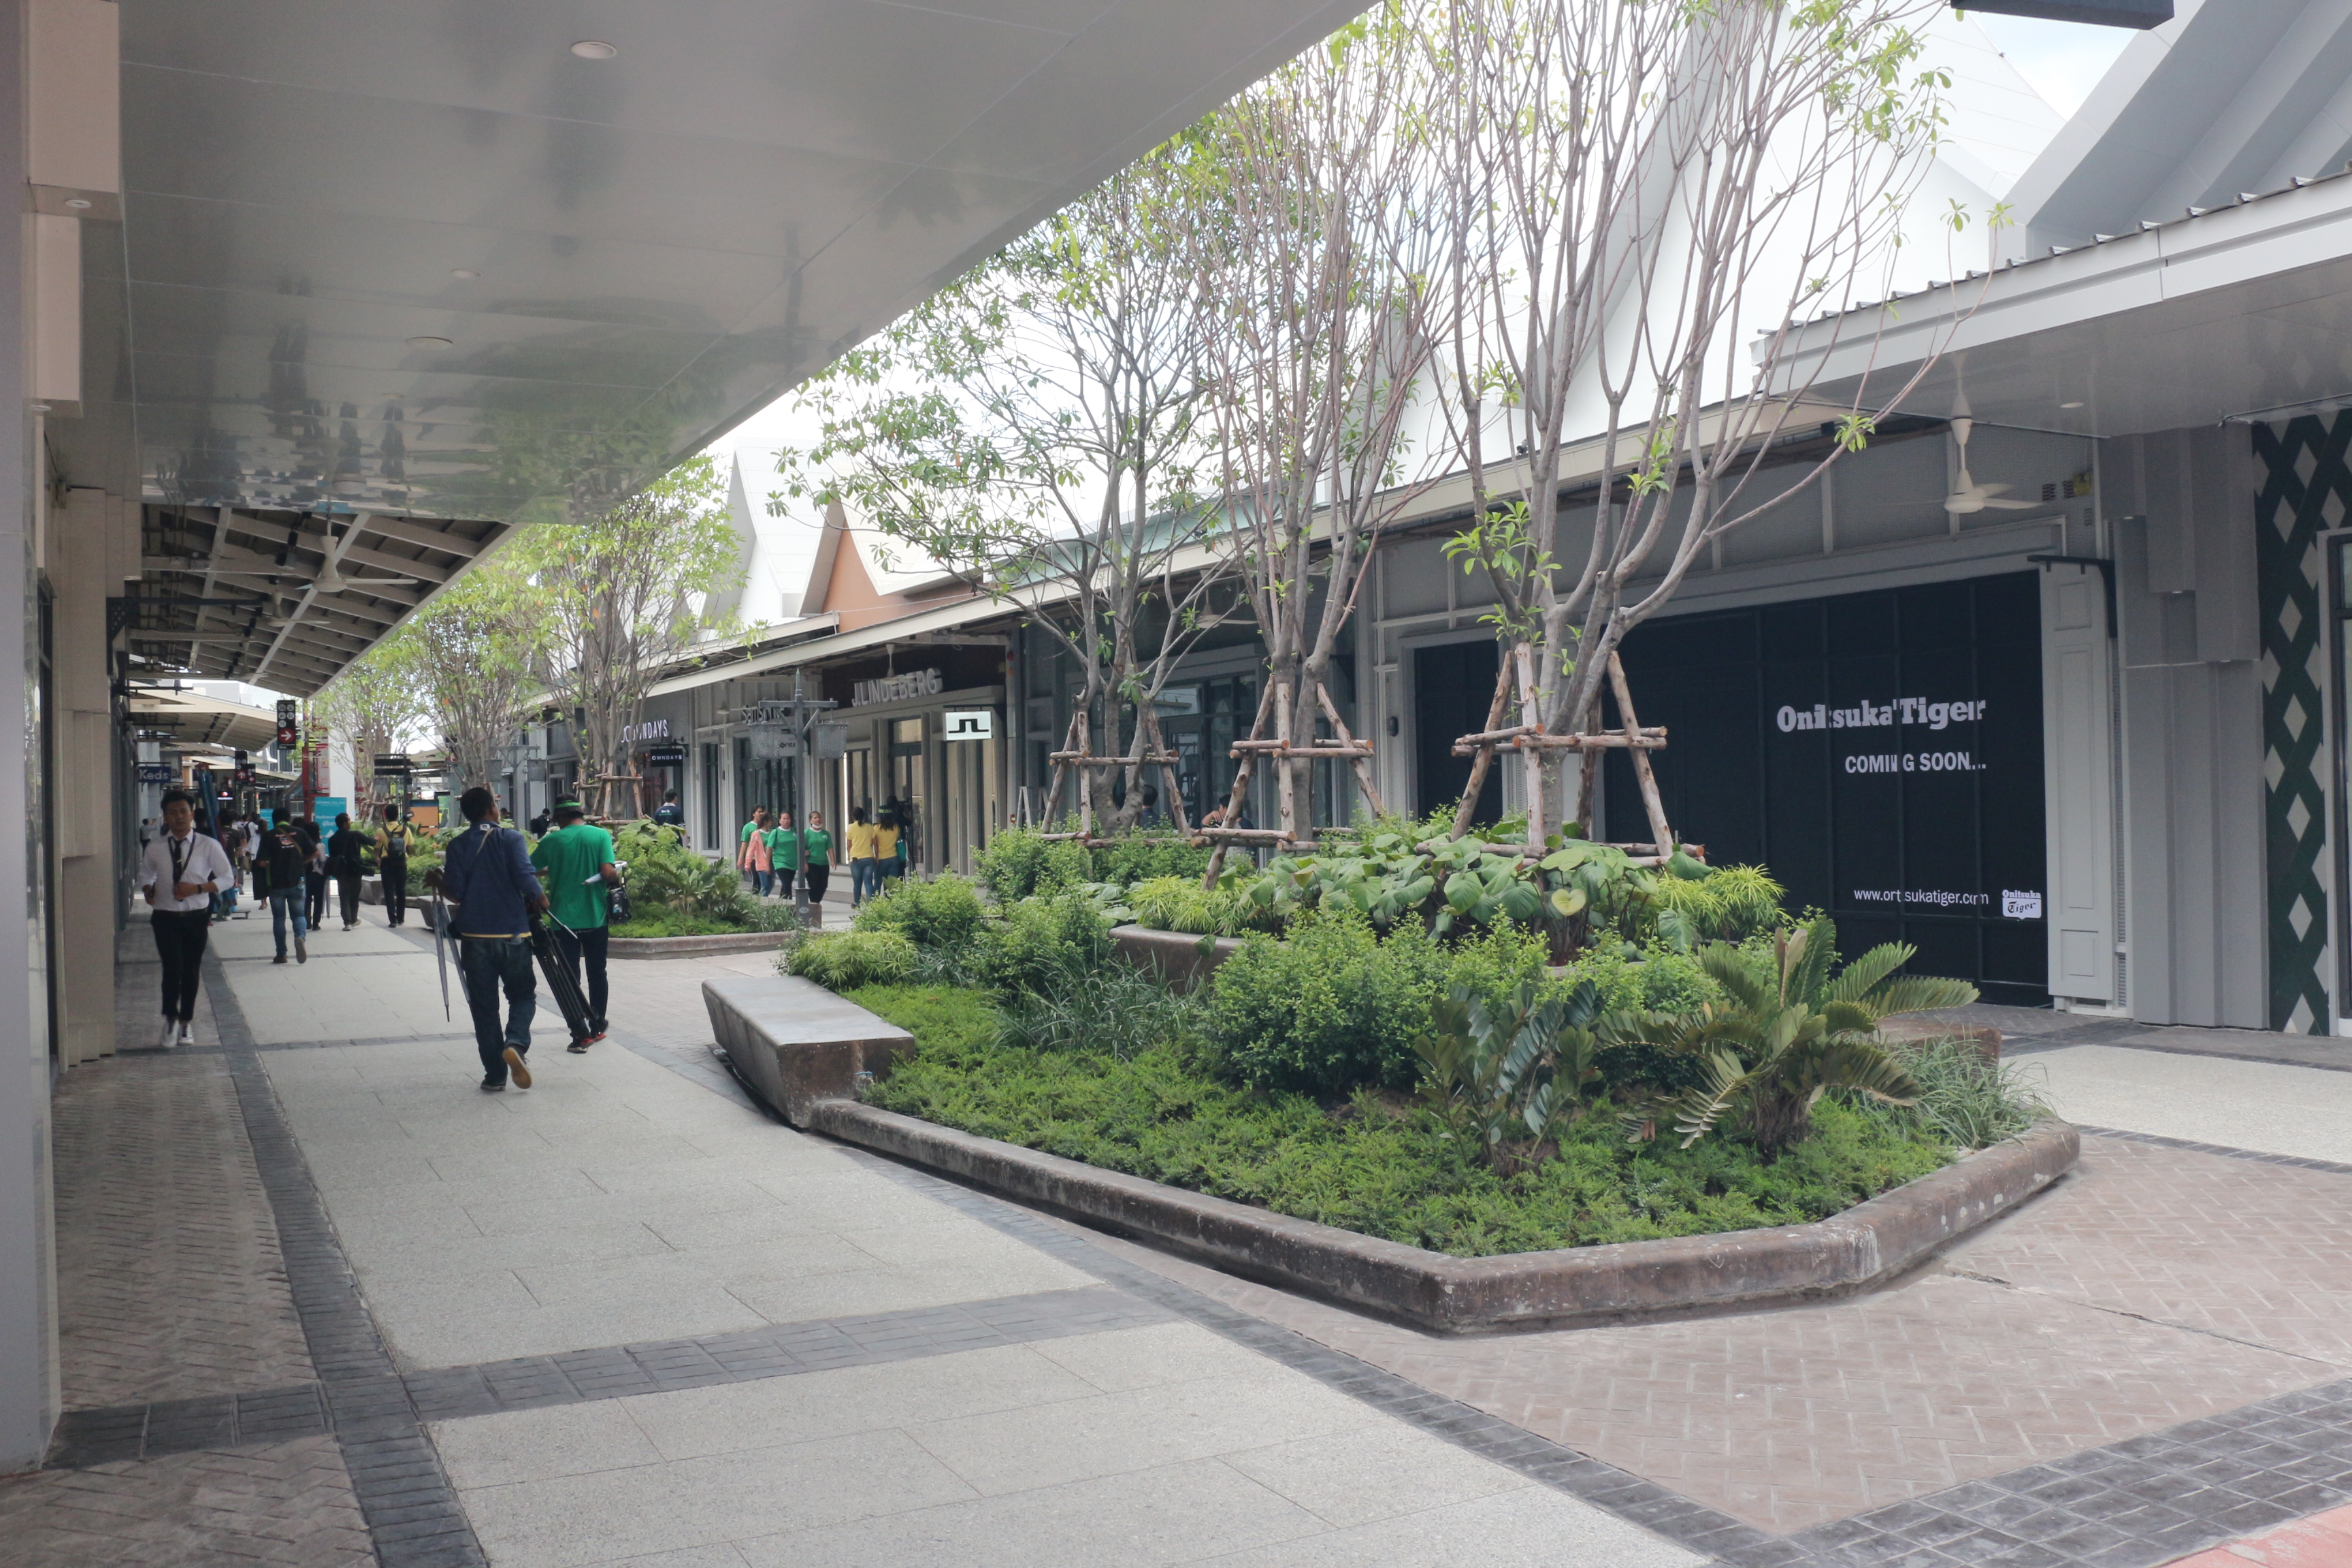 Central Village Vows to Open Despite Ongoing Dispute